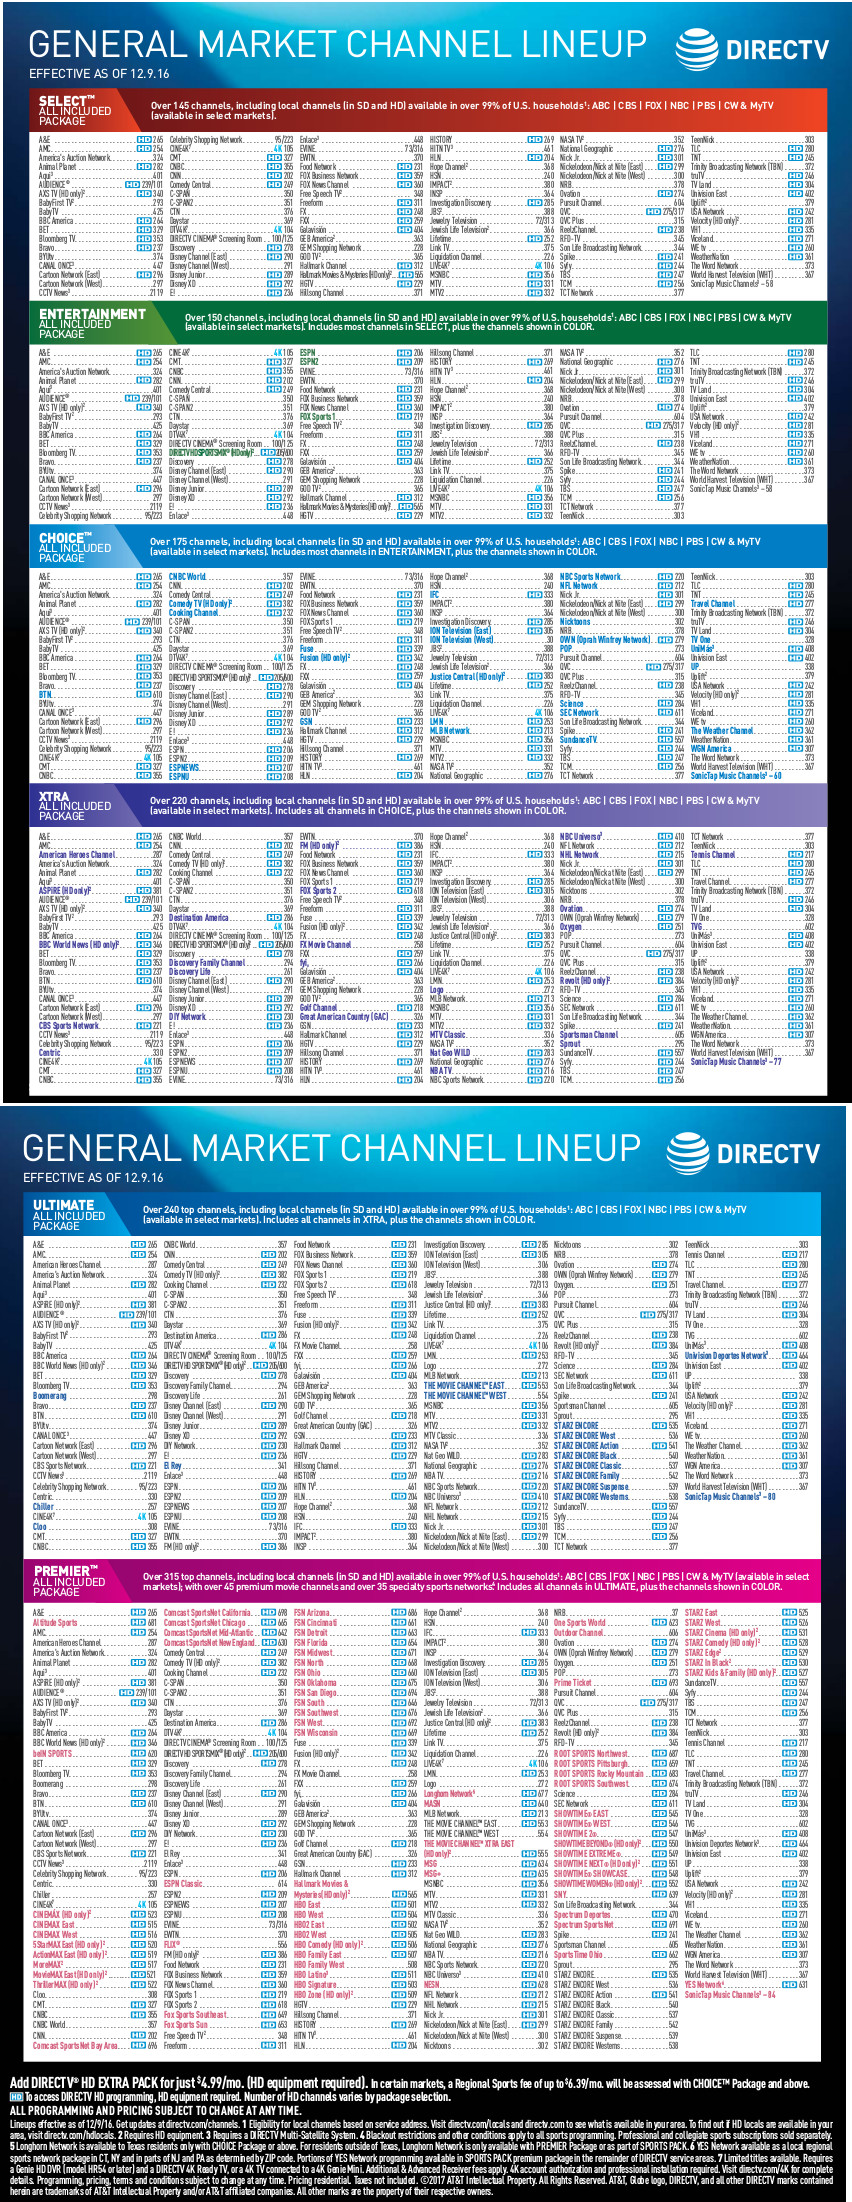 Union IA 50258 DirecTV Pricing Specials